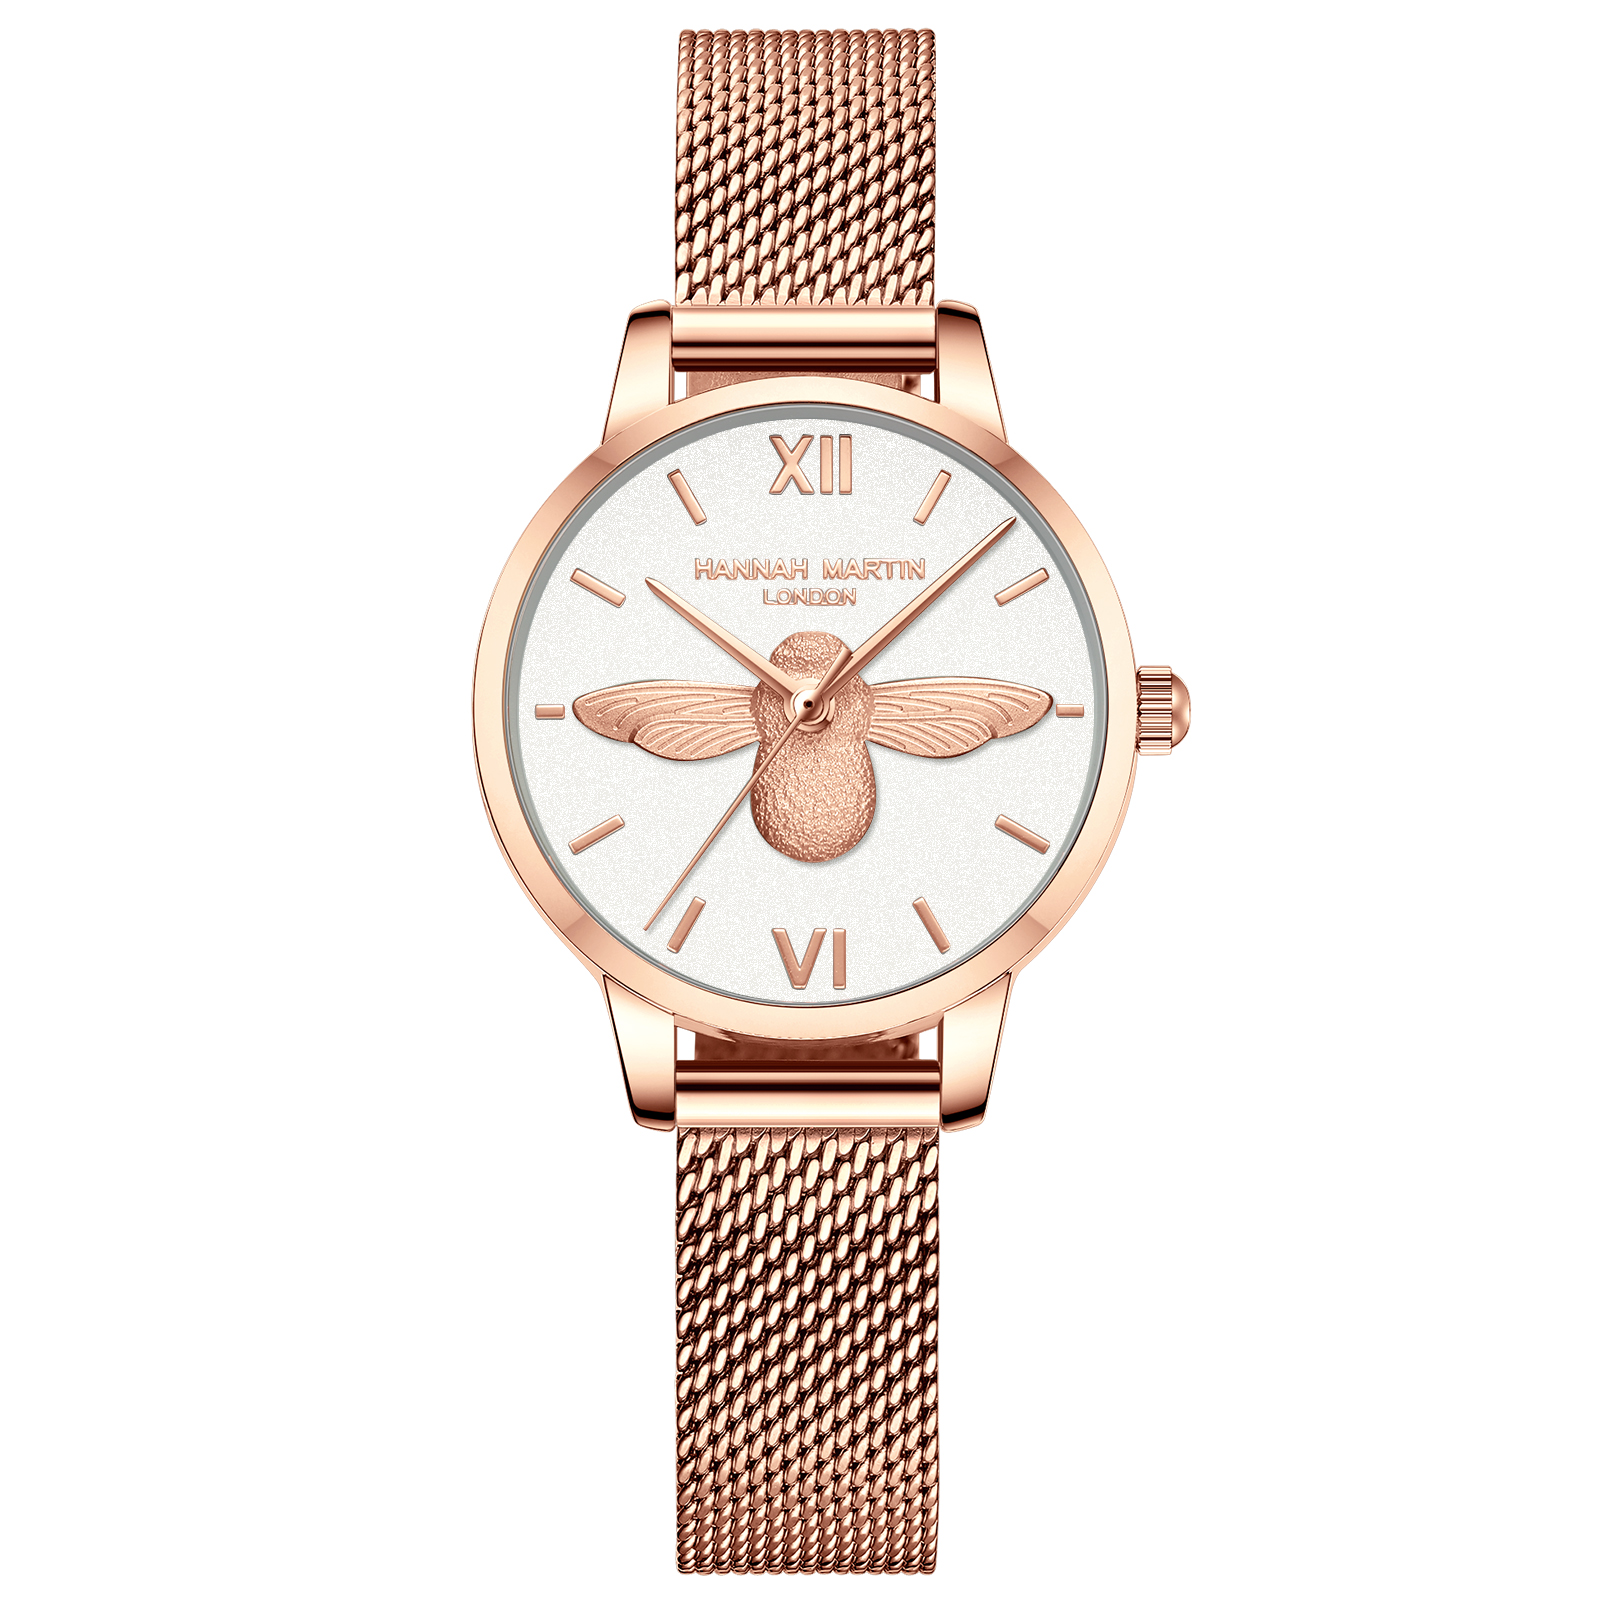 Stainless Steel Mesh Wristwatches Top Brand New Luxury Japan Quartz Movement Rose Gold Designer Elegant Style Watches For Women